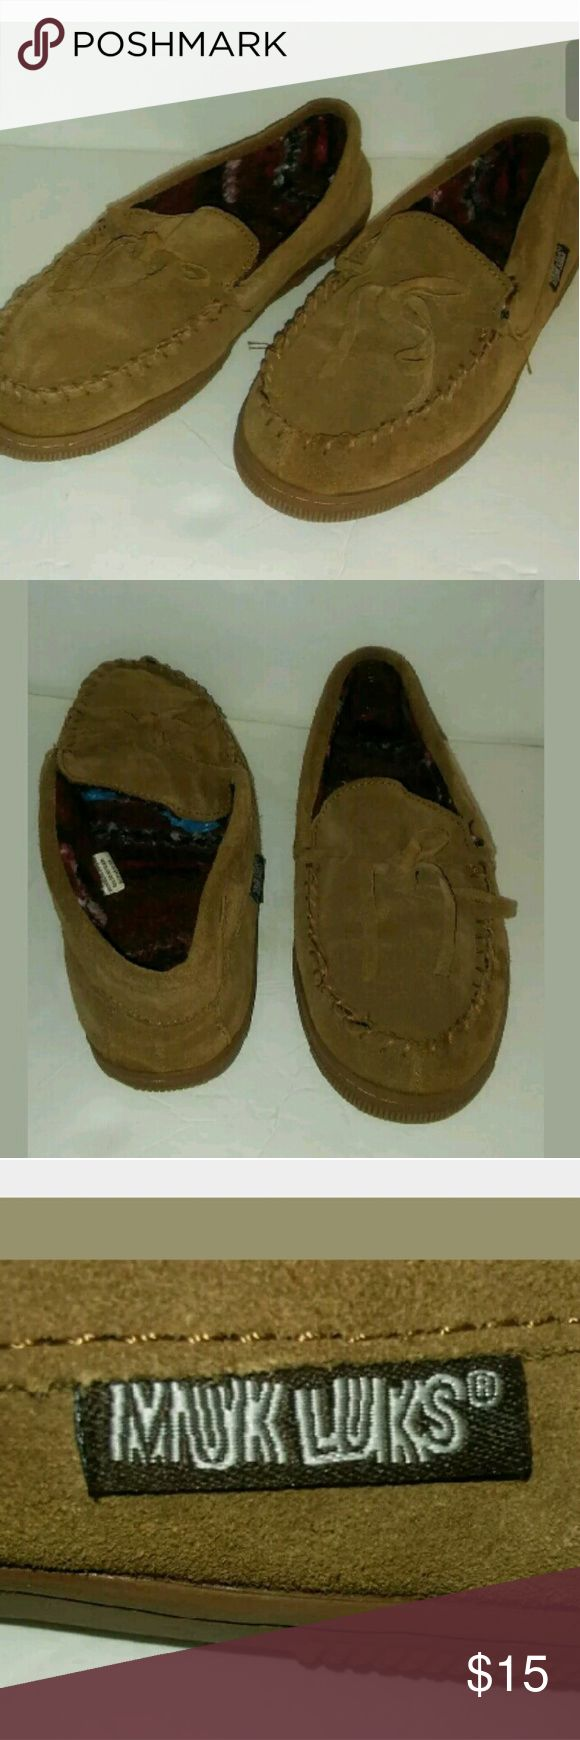 Muk Luks size 9 loafers Muk Luks Mocassin Men Tan Loafer Slipper Shoes Cow Suede Size 9 Polyester Lining Muk Luks Shoes Loafers & Slip-Ons